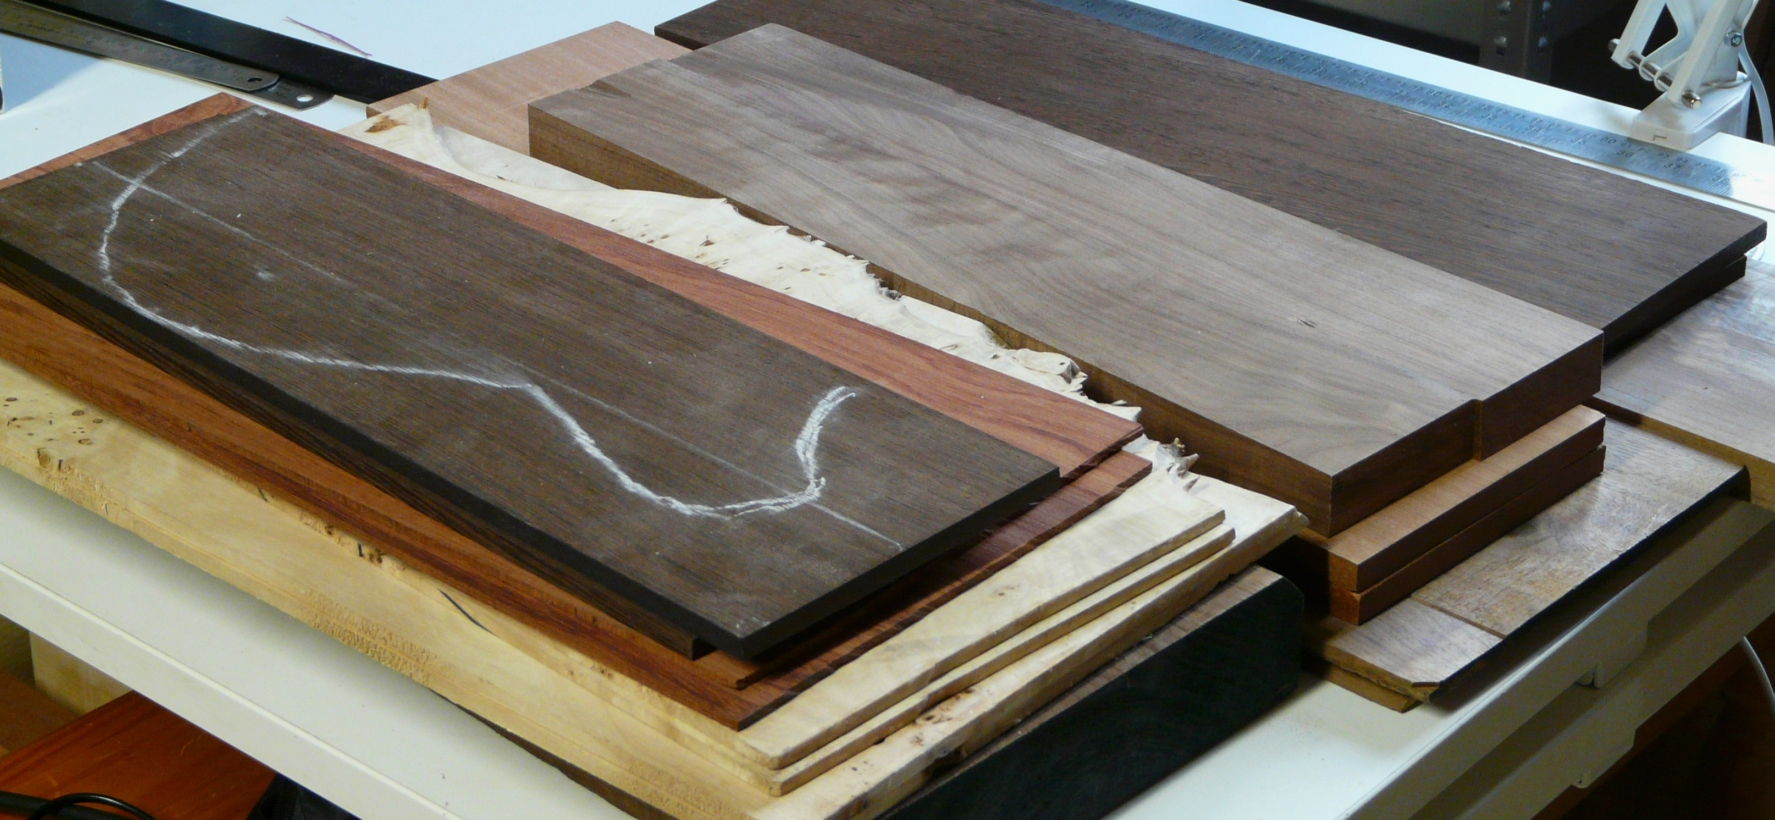 body woods for guitars and basses